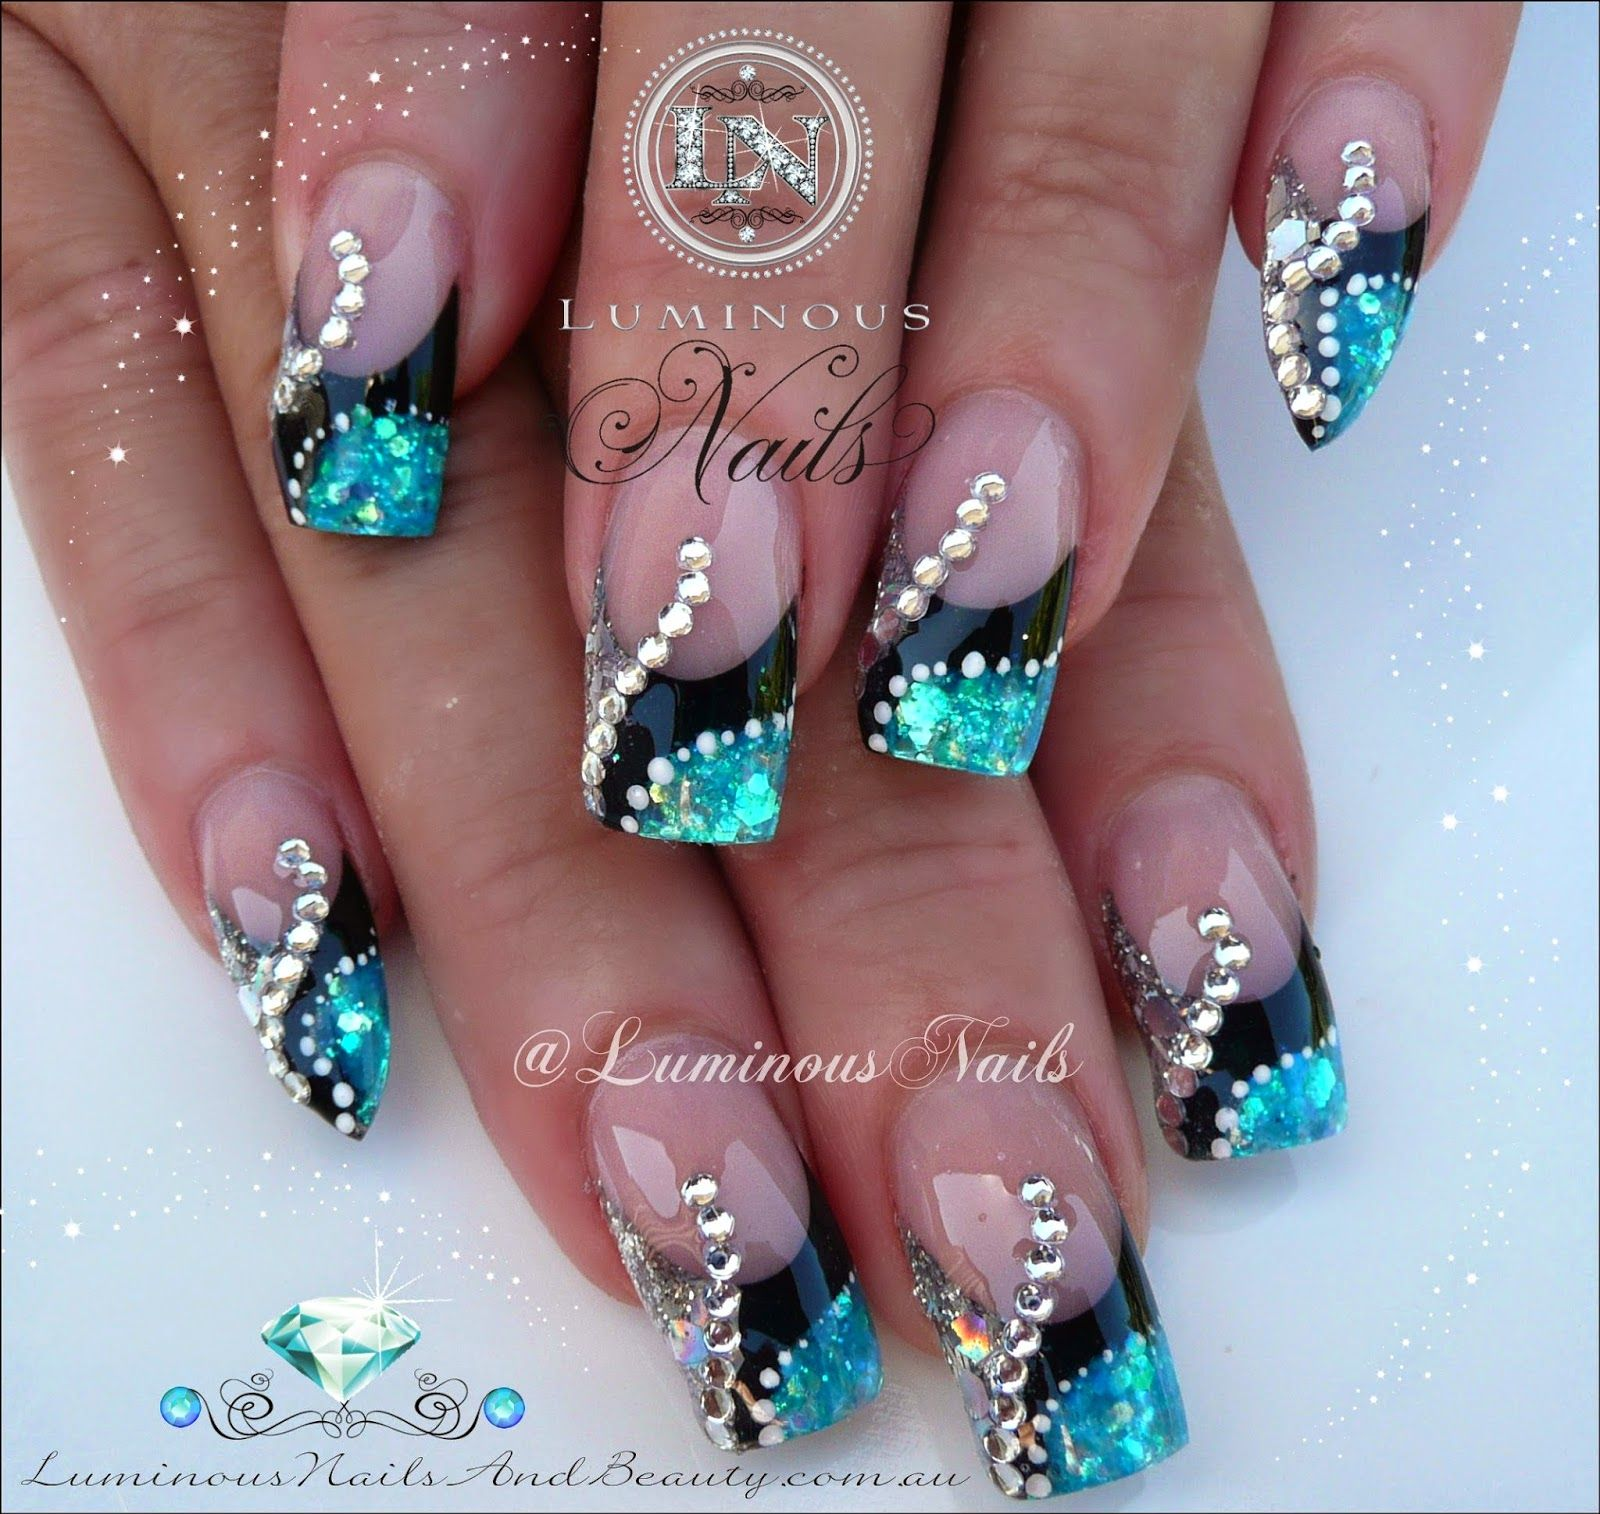 Luminousnails26beauty2cgoldcoastqldblue2csilver26 i think id like something simplerke the blue lined with black underneath prinsesfo Gallery